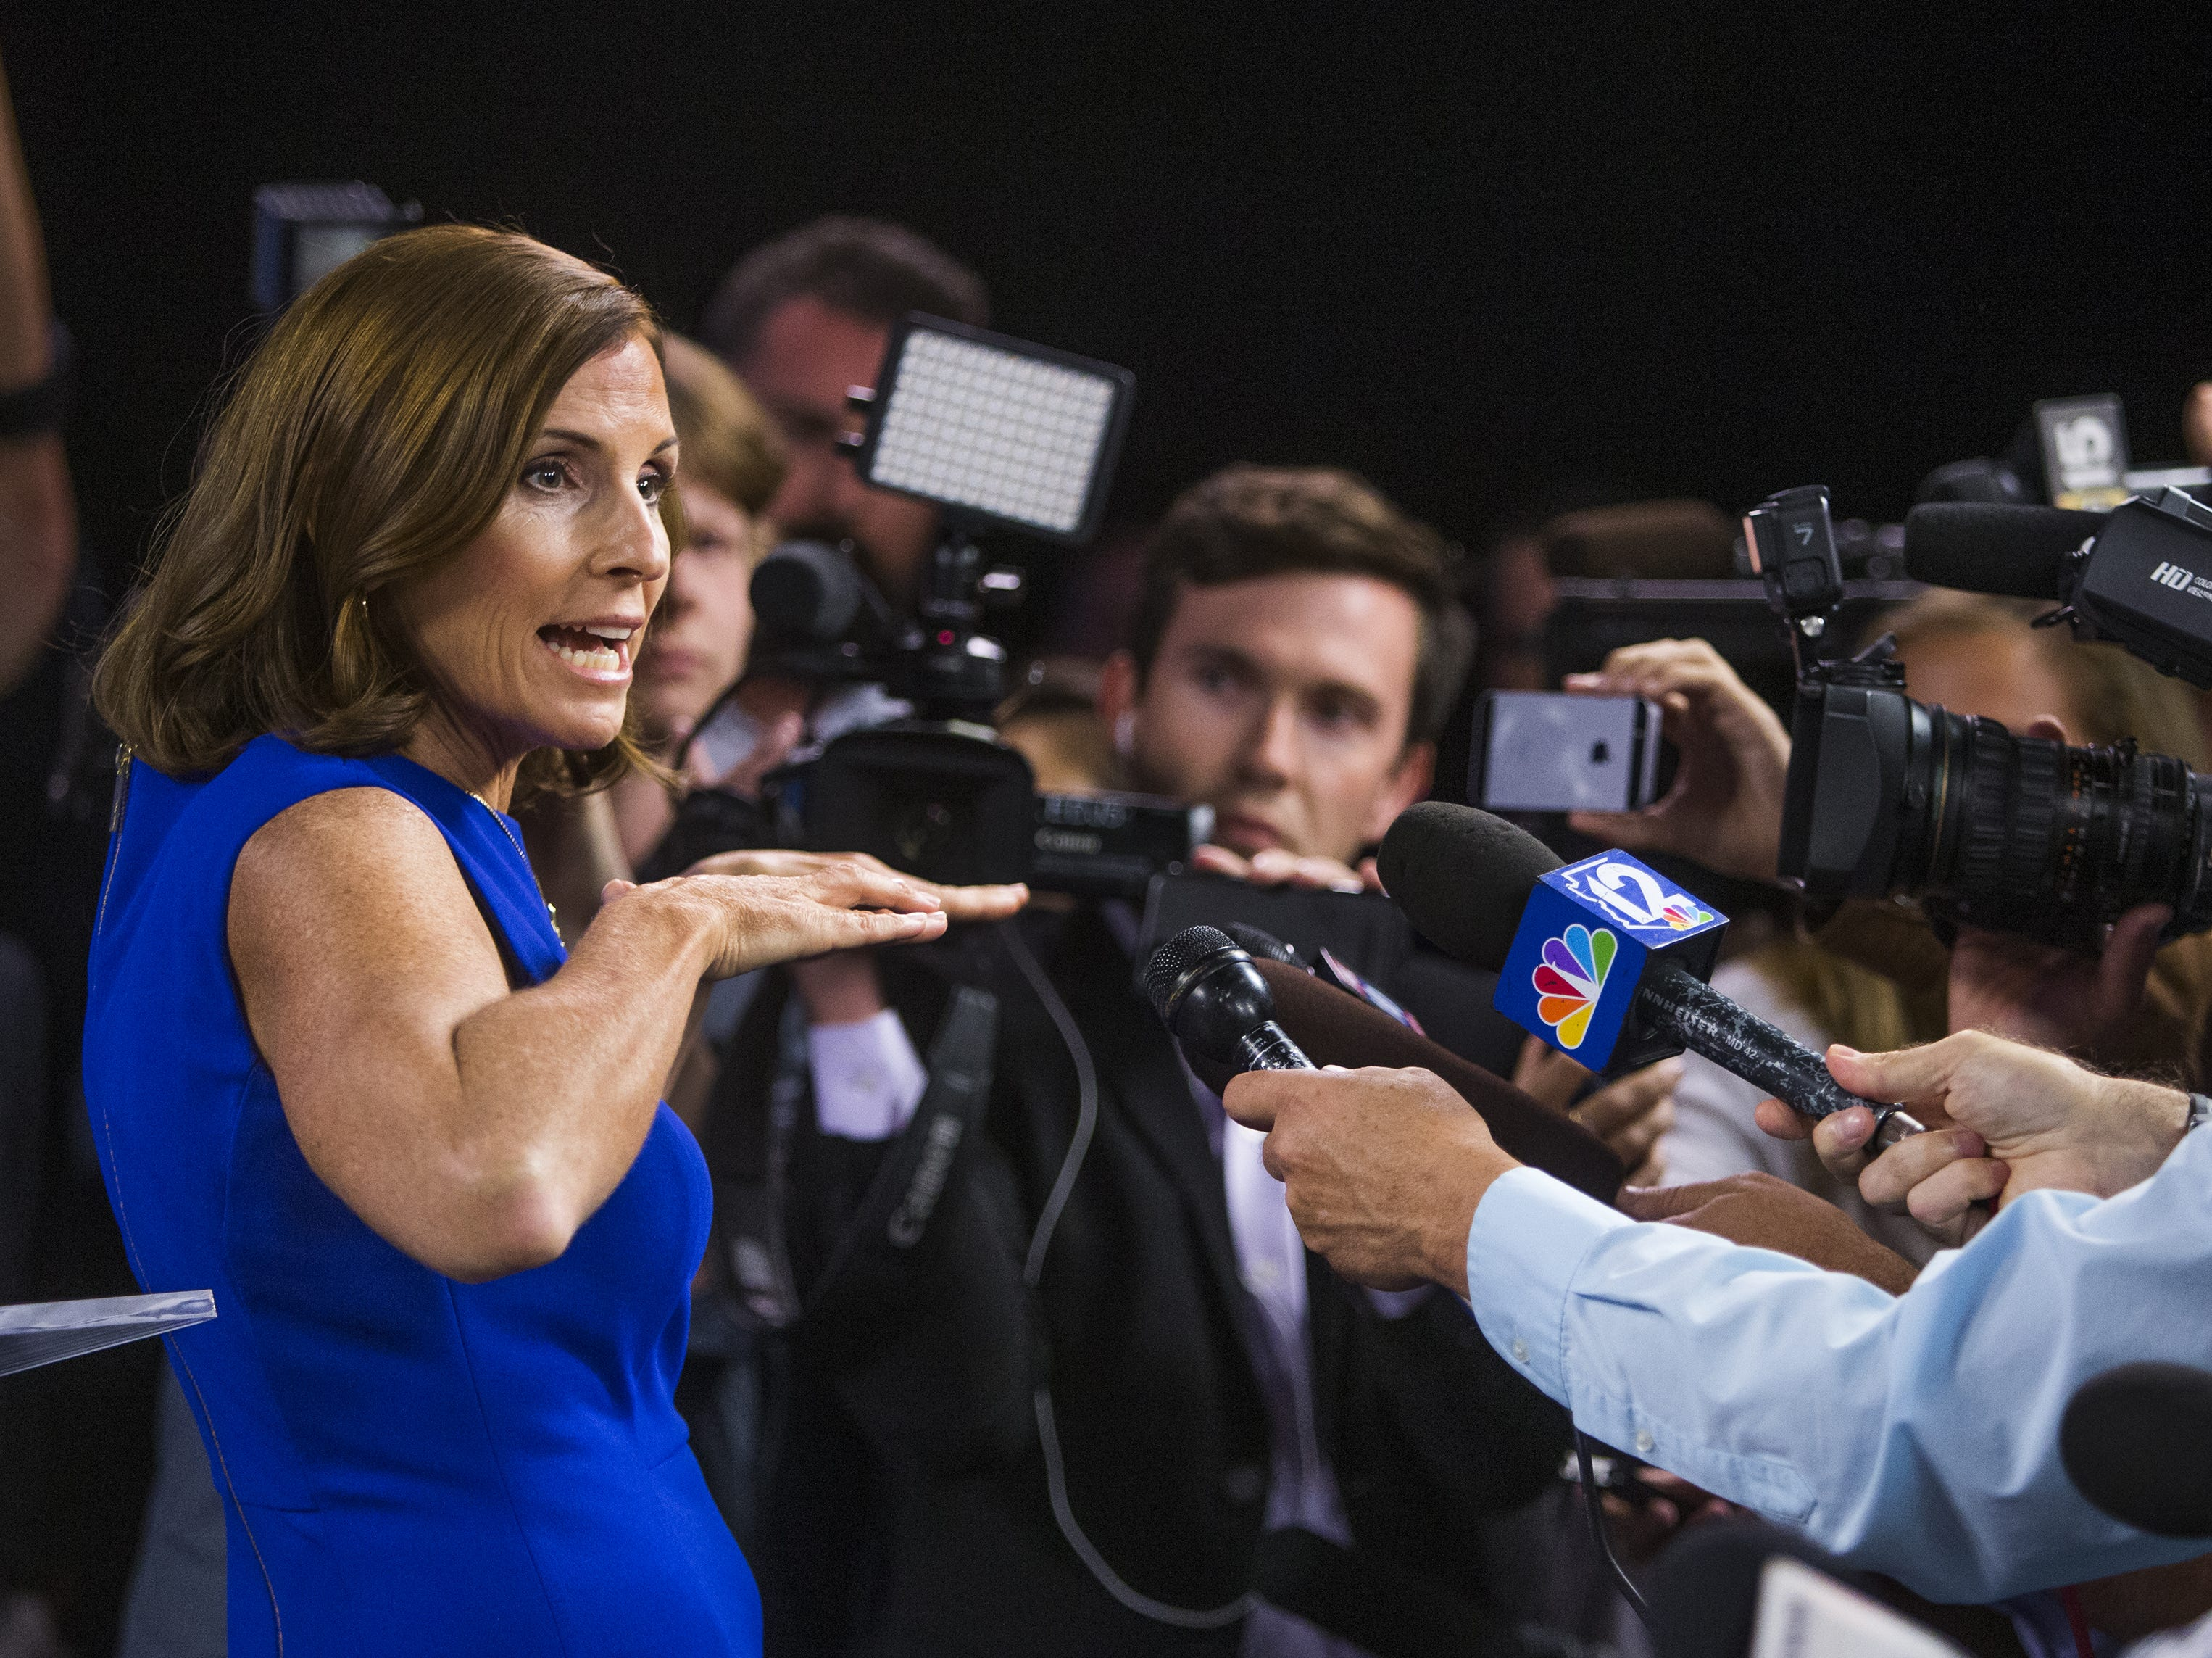 Rep. Martha McSally takes questions from the press after debating Rep. Kyrsten Sinema in the Arizona PBS studios at the Walter Cronkite School of Journalism and Mass Communication at Arizona State University in Phoenix, Monday, October 15, 2018. One of the two will become the first woman to represent Arizona in the United States Senate.